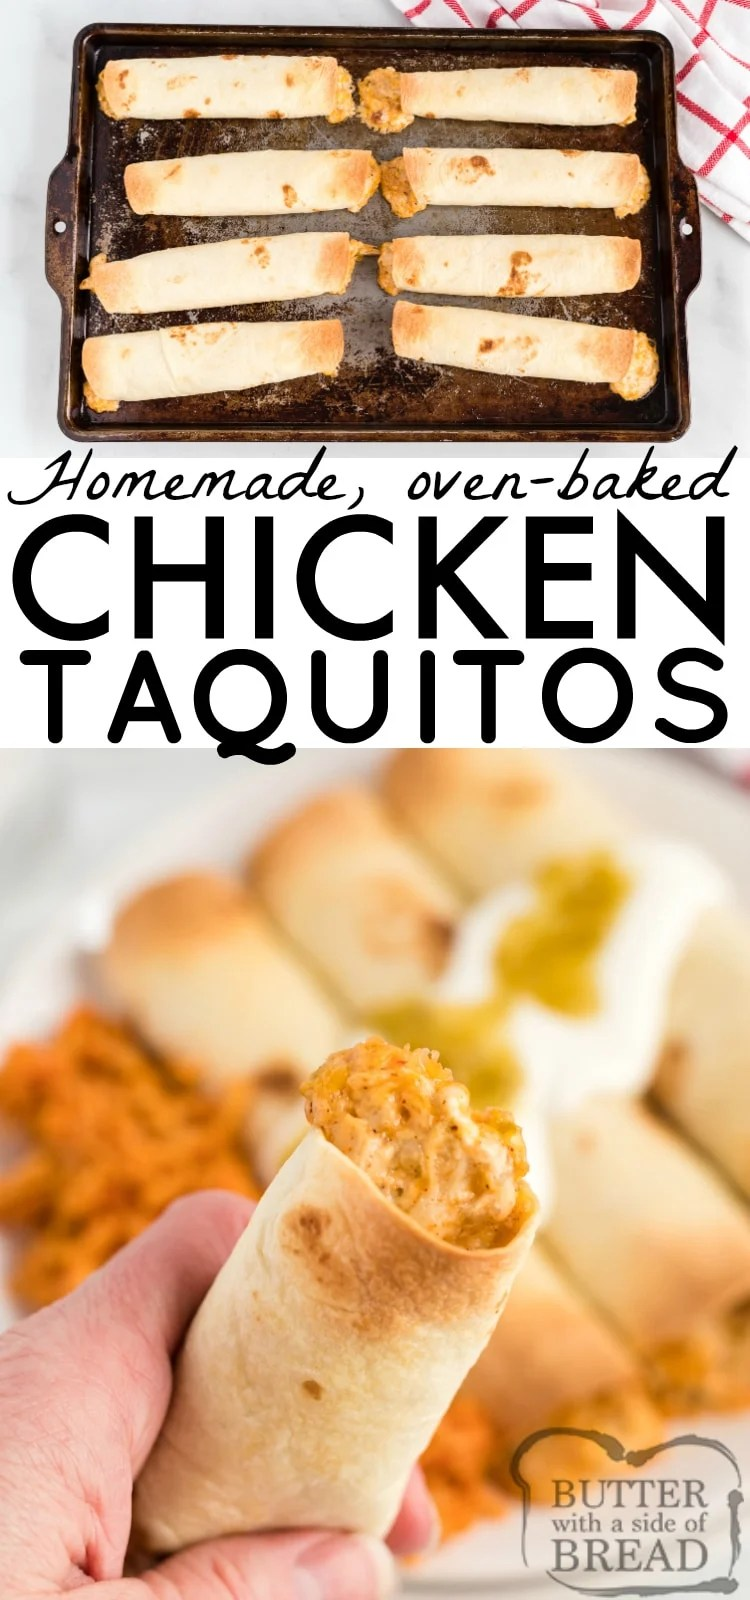 Baked Chicken Taquitos are full of chicken, cheese and lots of salsa and spices to give this delicious homemade taquito recipe tons of flavor.